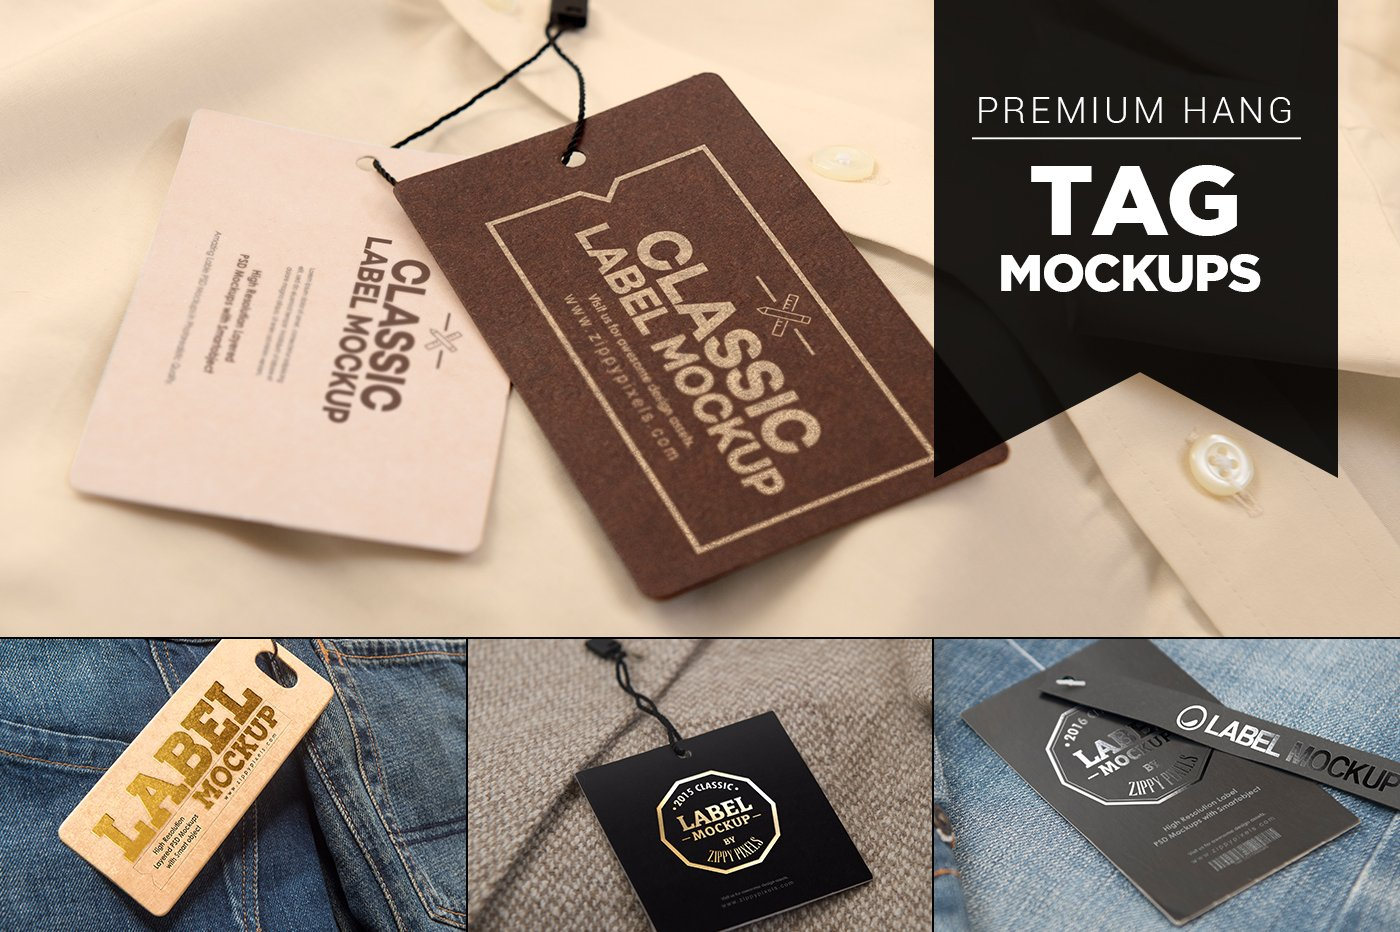 Tag: 14 Premium Hang Tag Mockups Vol. 2